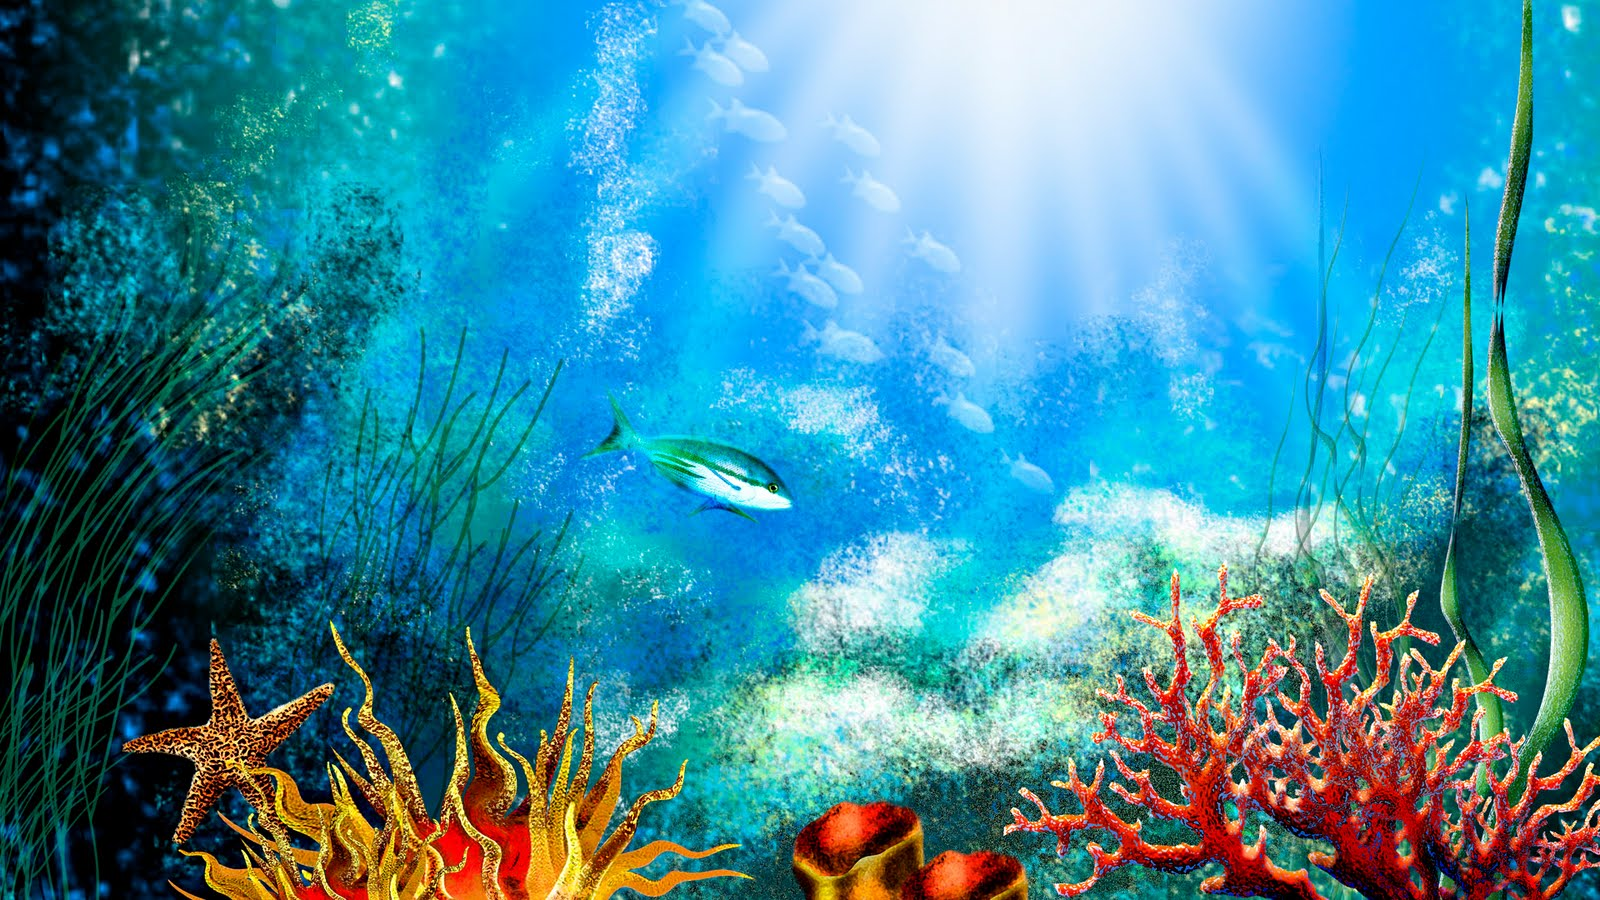 Free 3D Wallpapers Download: Aquarium hd wallpaper, aquarium wallpaper